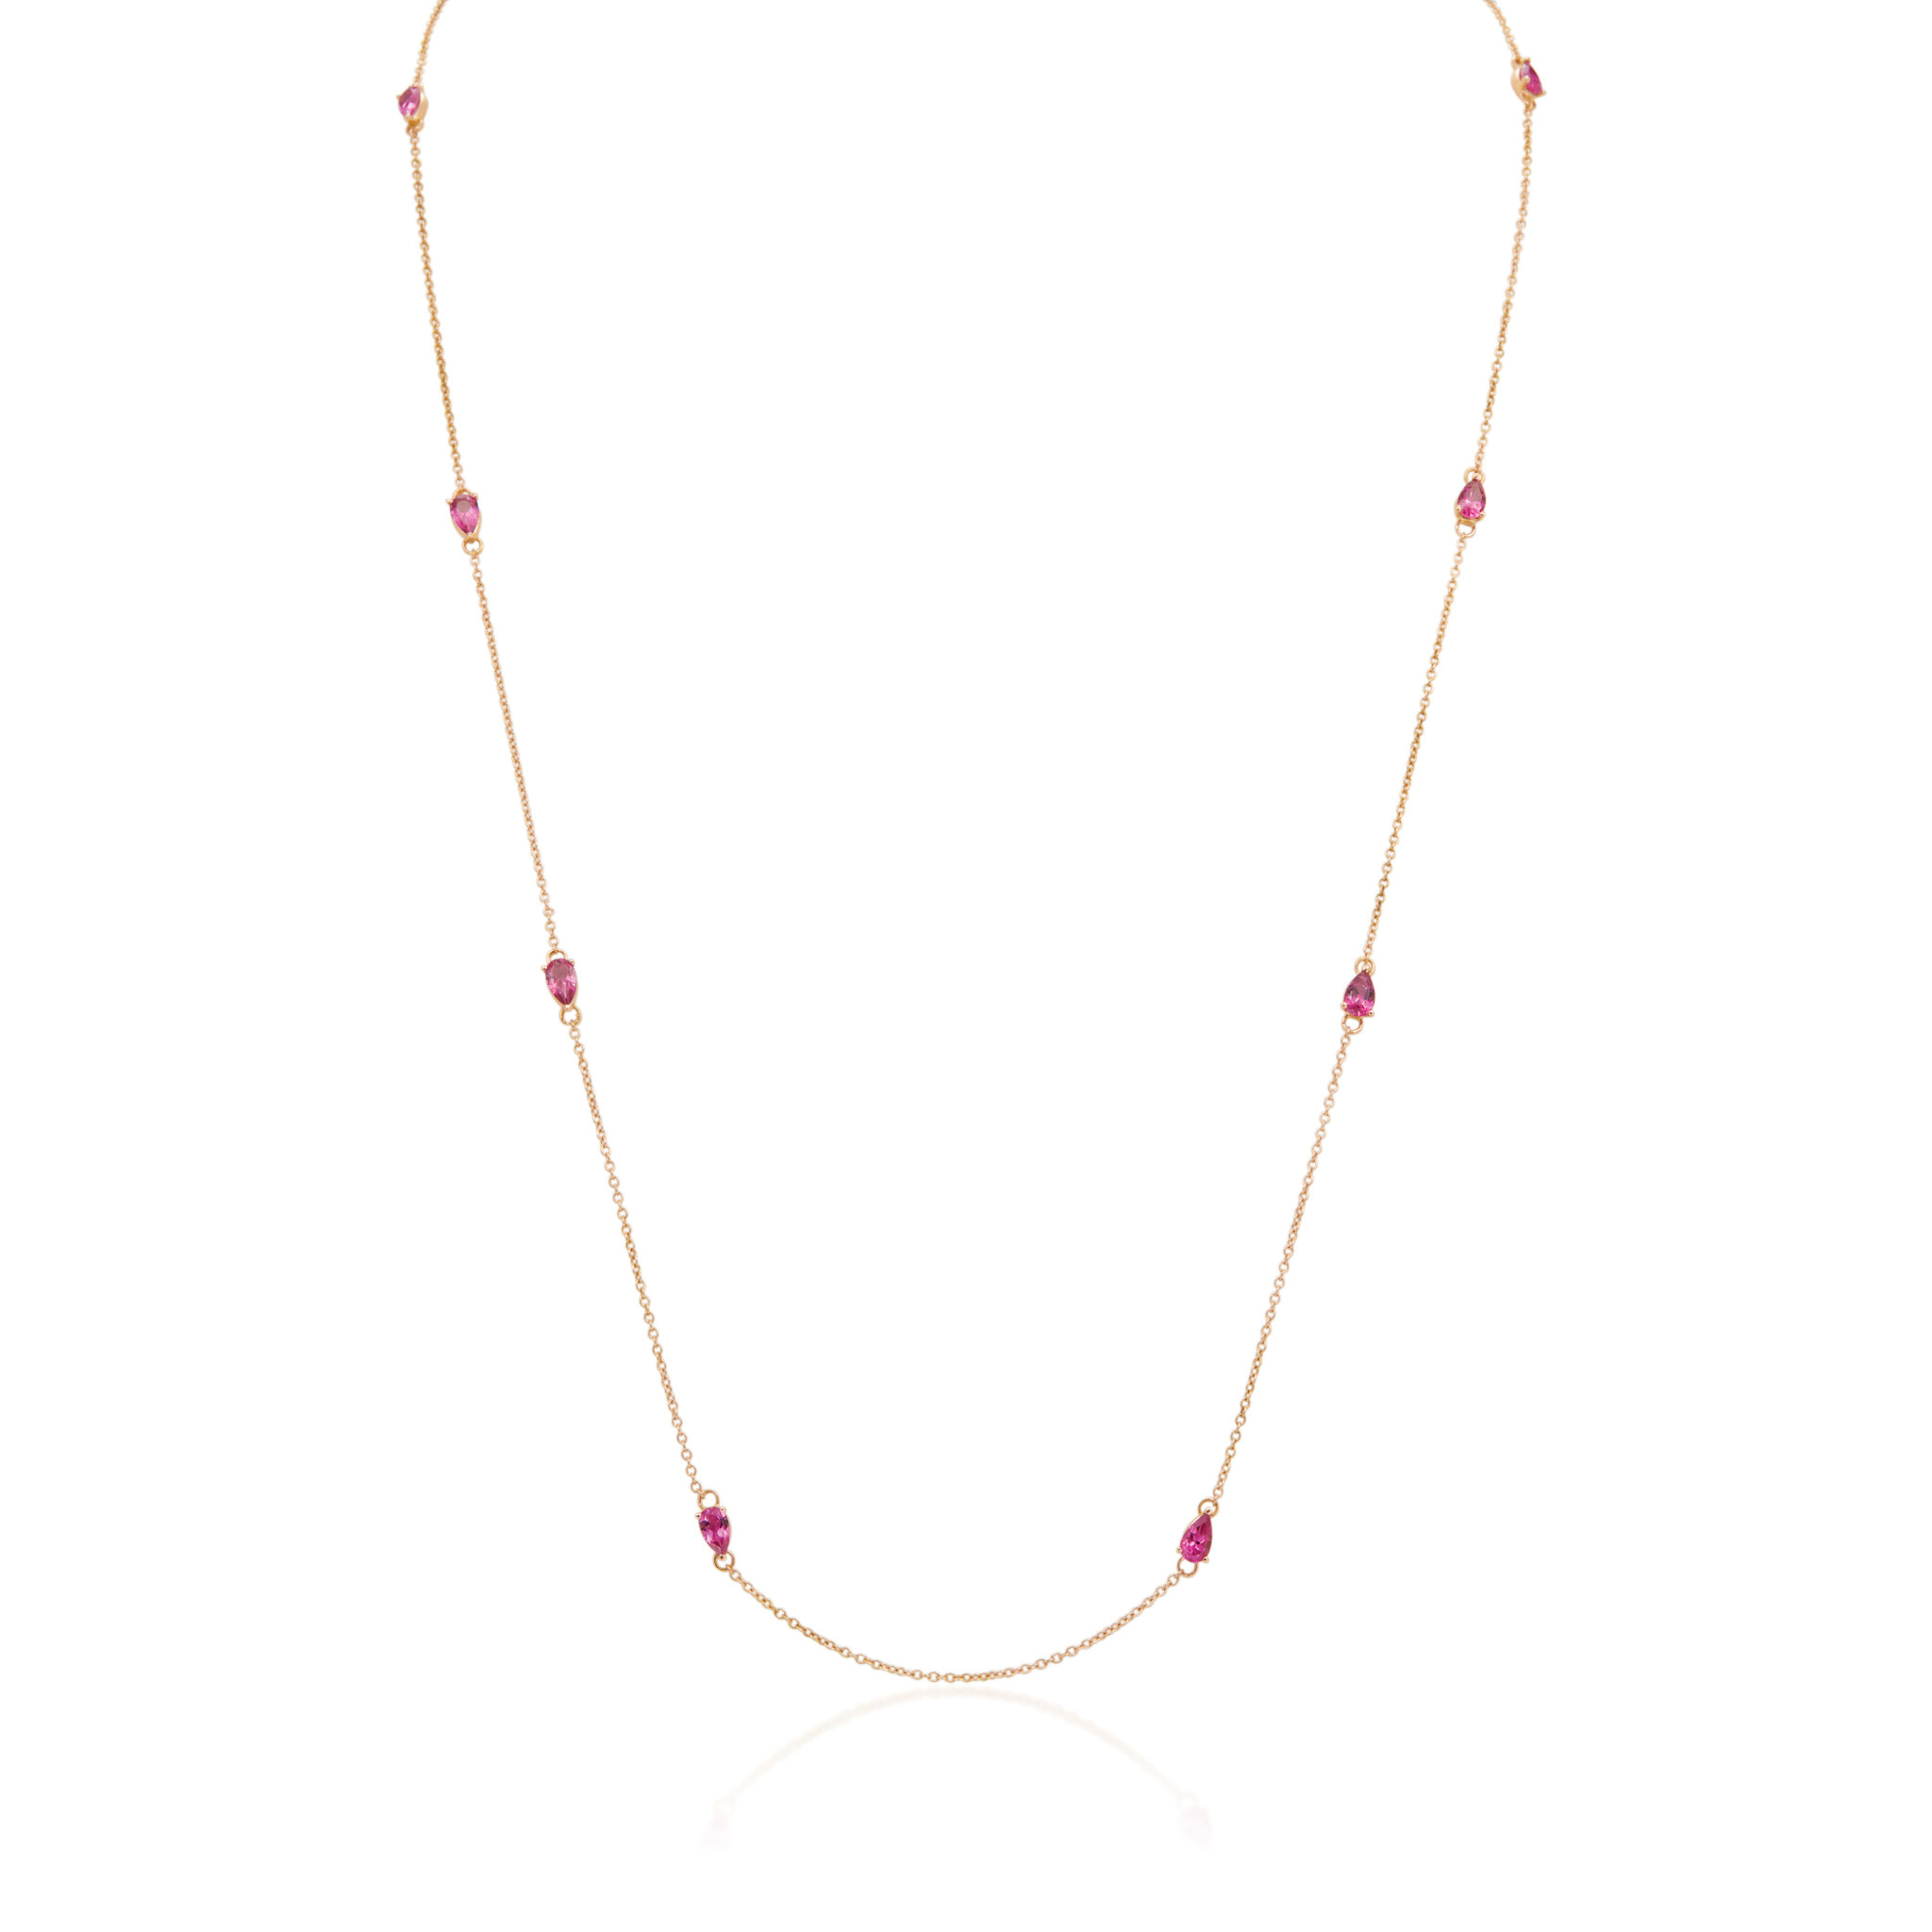 Plima Chain Necklace